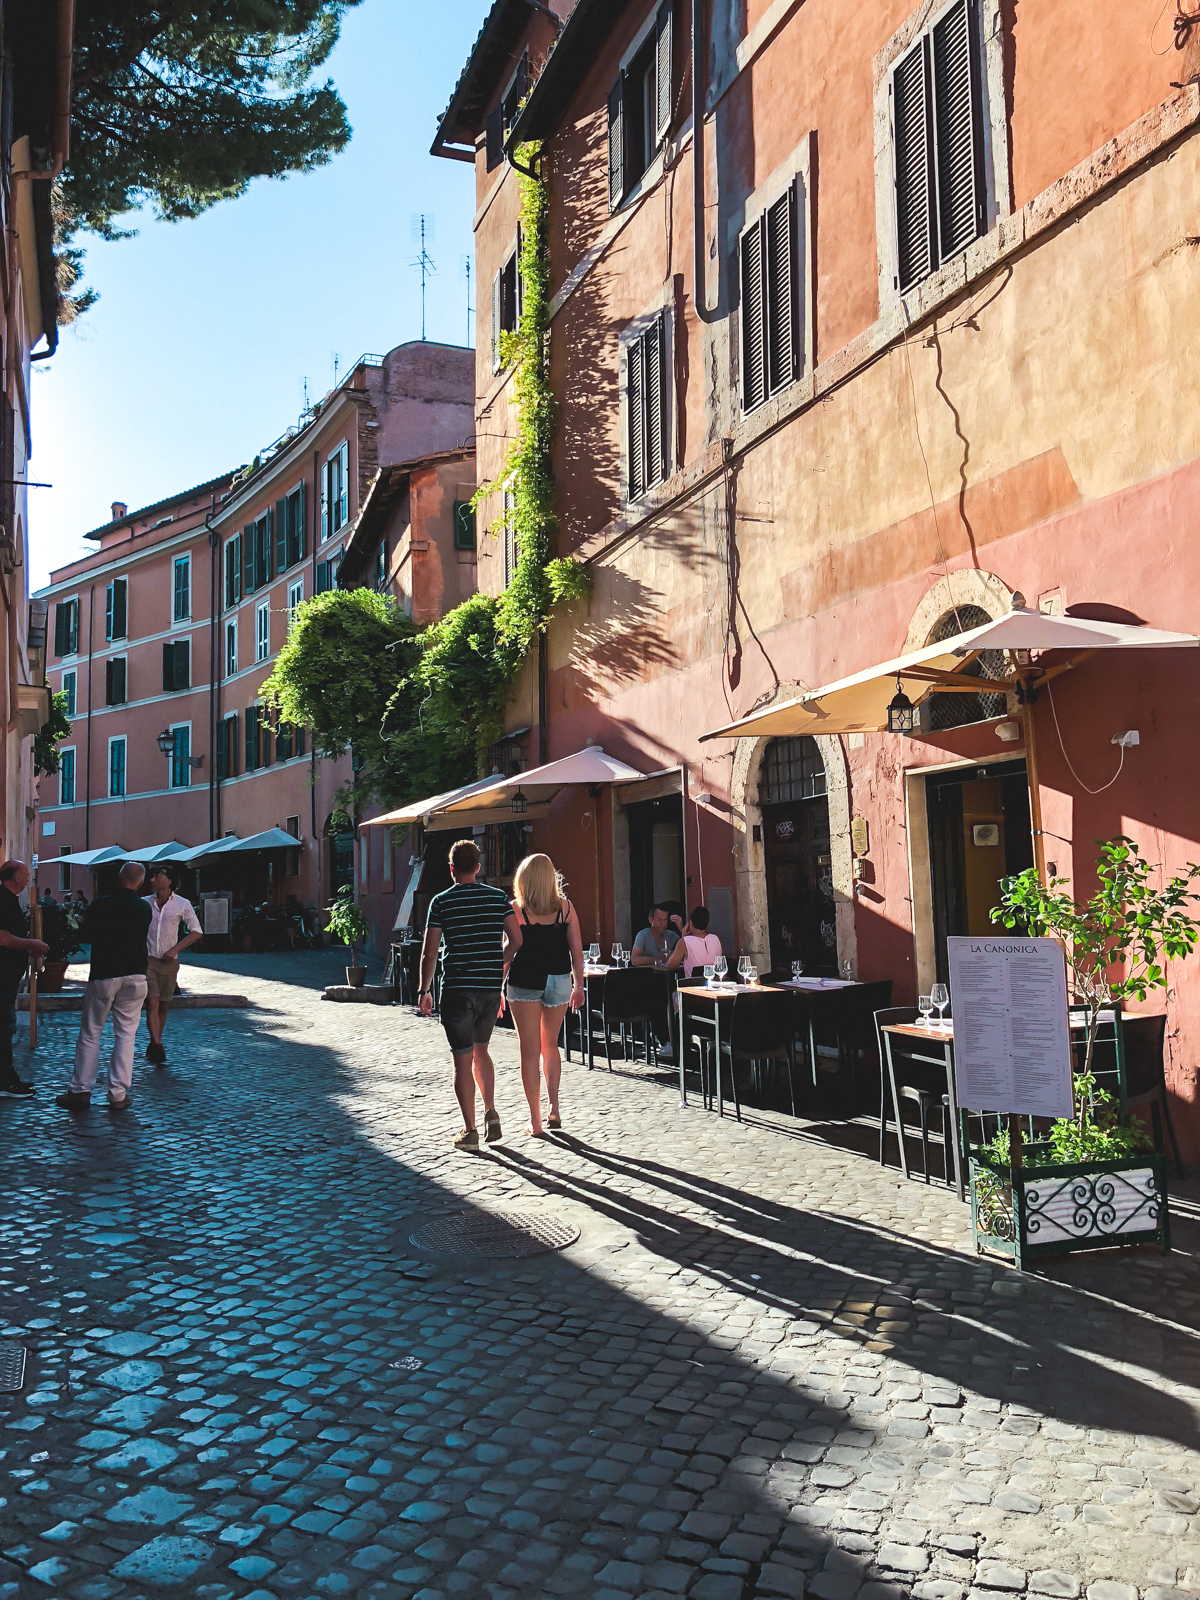 walking the streets of Trastevere just before sunset